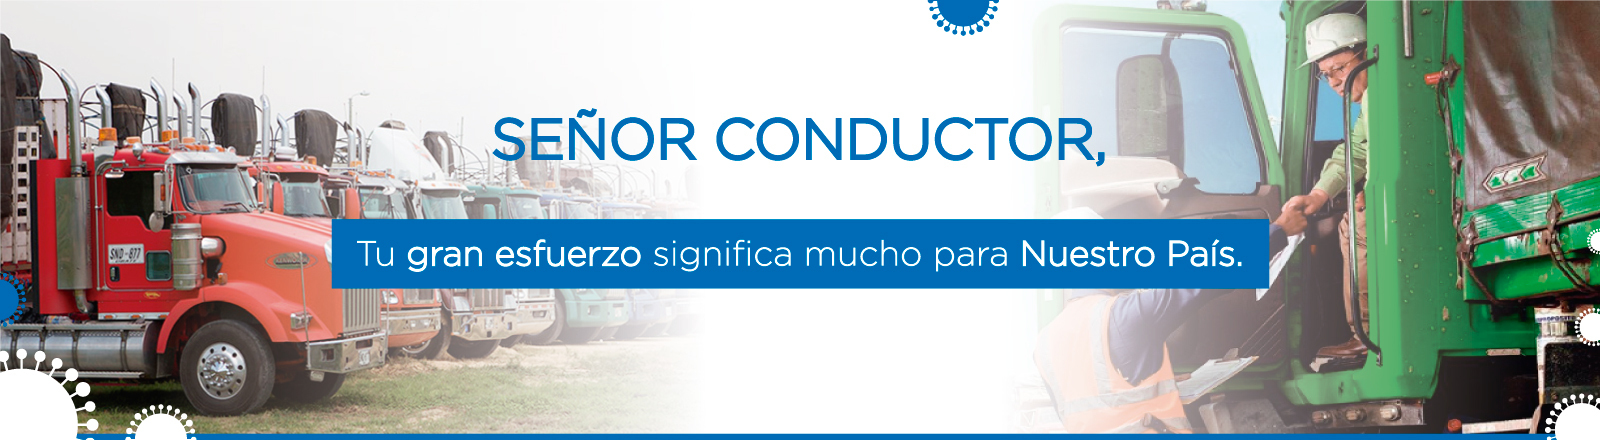 Banner-Conductores-2